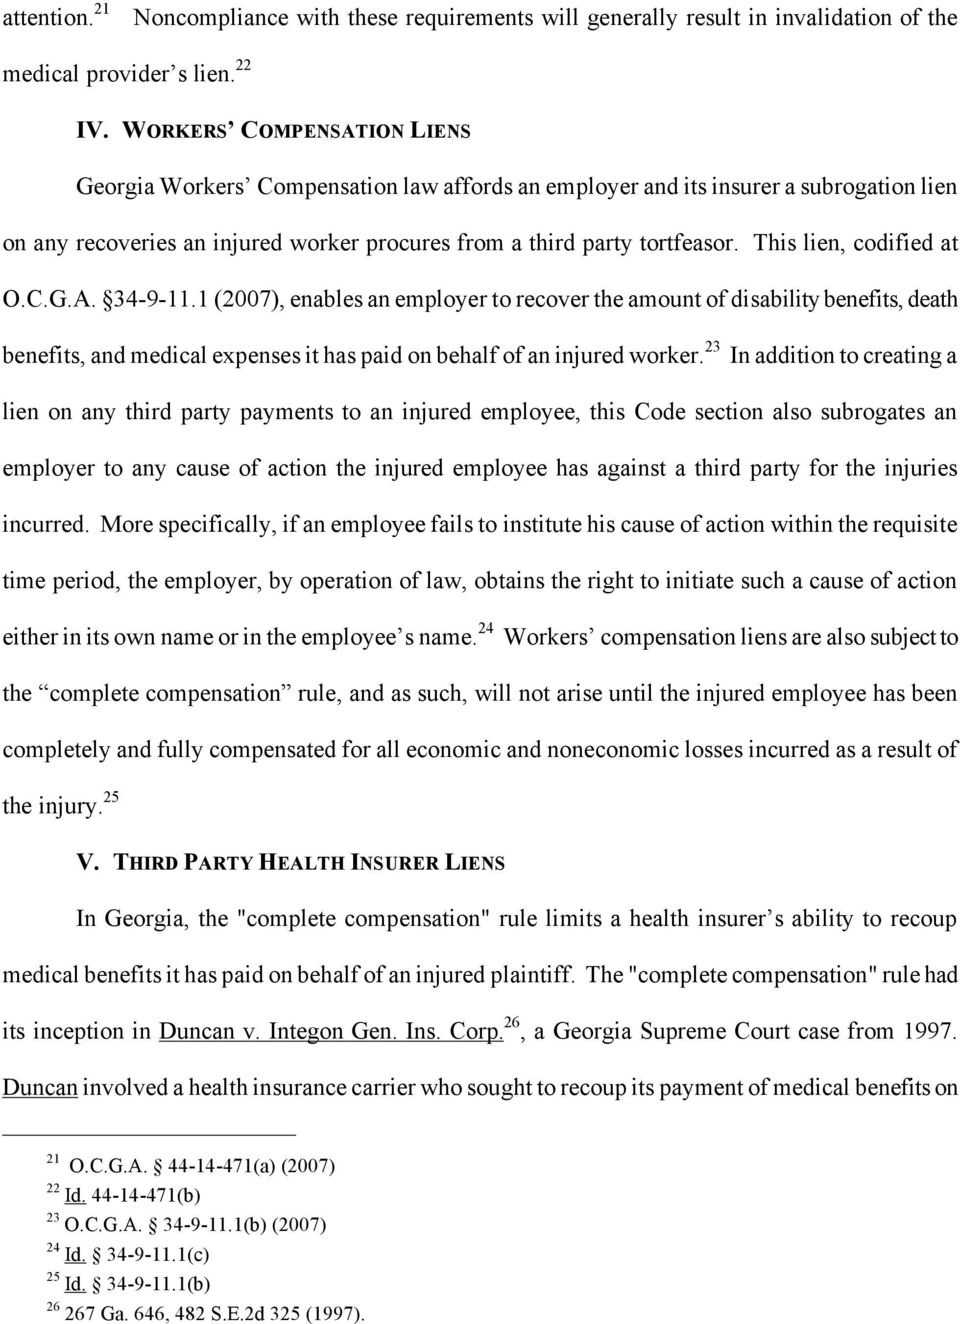 This lien, codified at O.C.G.A. 34-9-11.1 (2007), enables an employer to recover the amount of disability benefits, death benefits, and medical expenses it has paid on behalf of an injured worker.